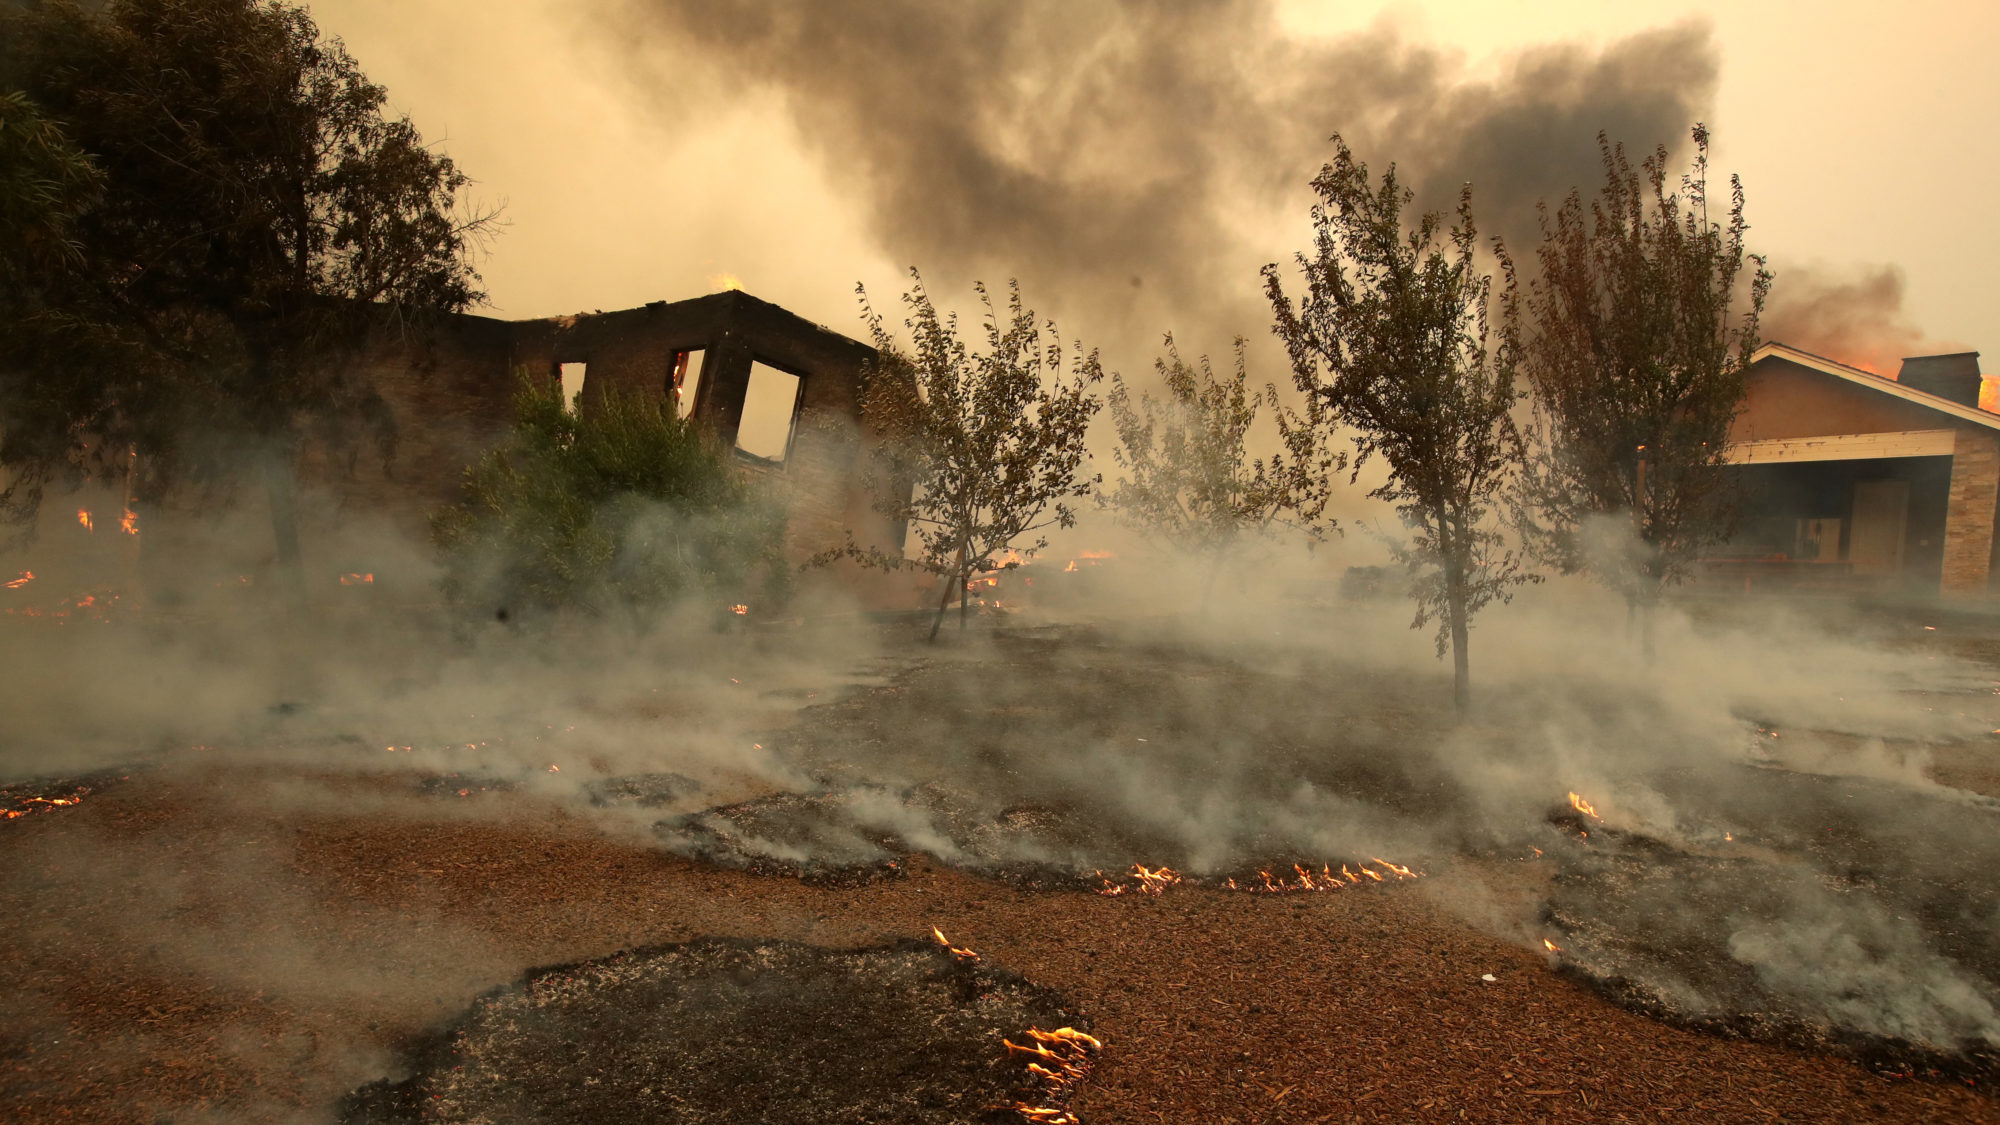 Small spot fires smolder near a destroyed structure in Geyserville, California after the Kincade Fire moved through the area. Fueled by high winds, the Kincade Fire has burned over 66,000 acres. (Photo by Justin Sullivan/Getty Images)